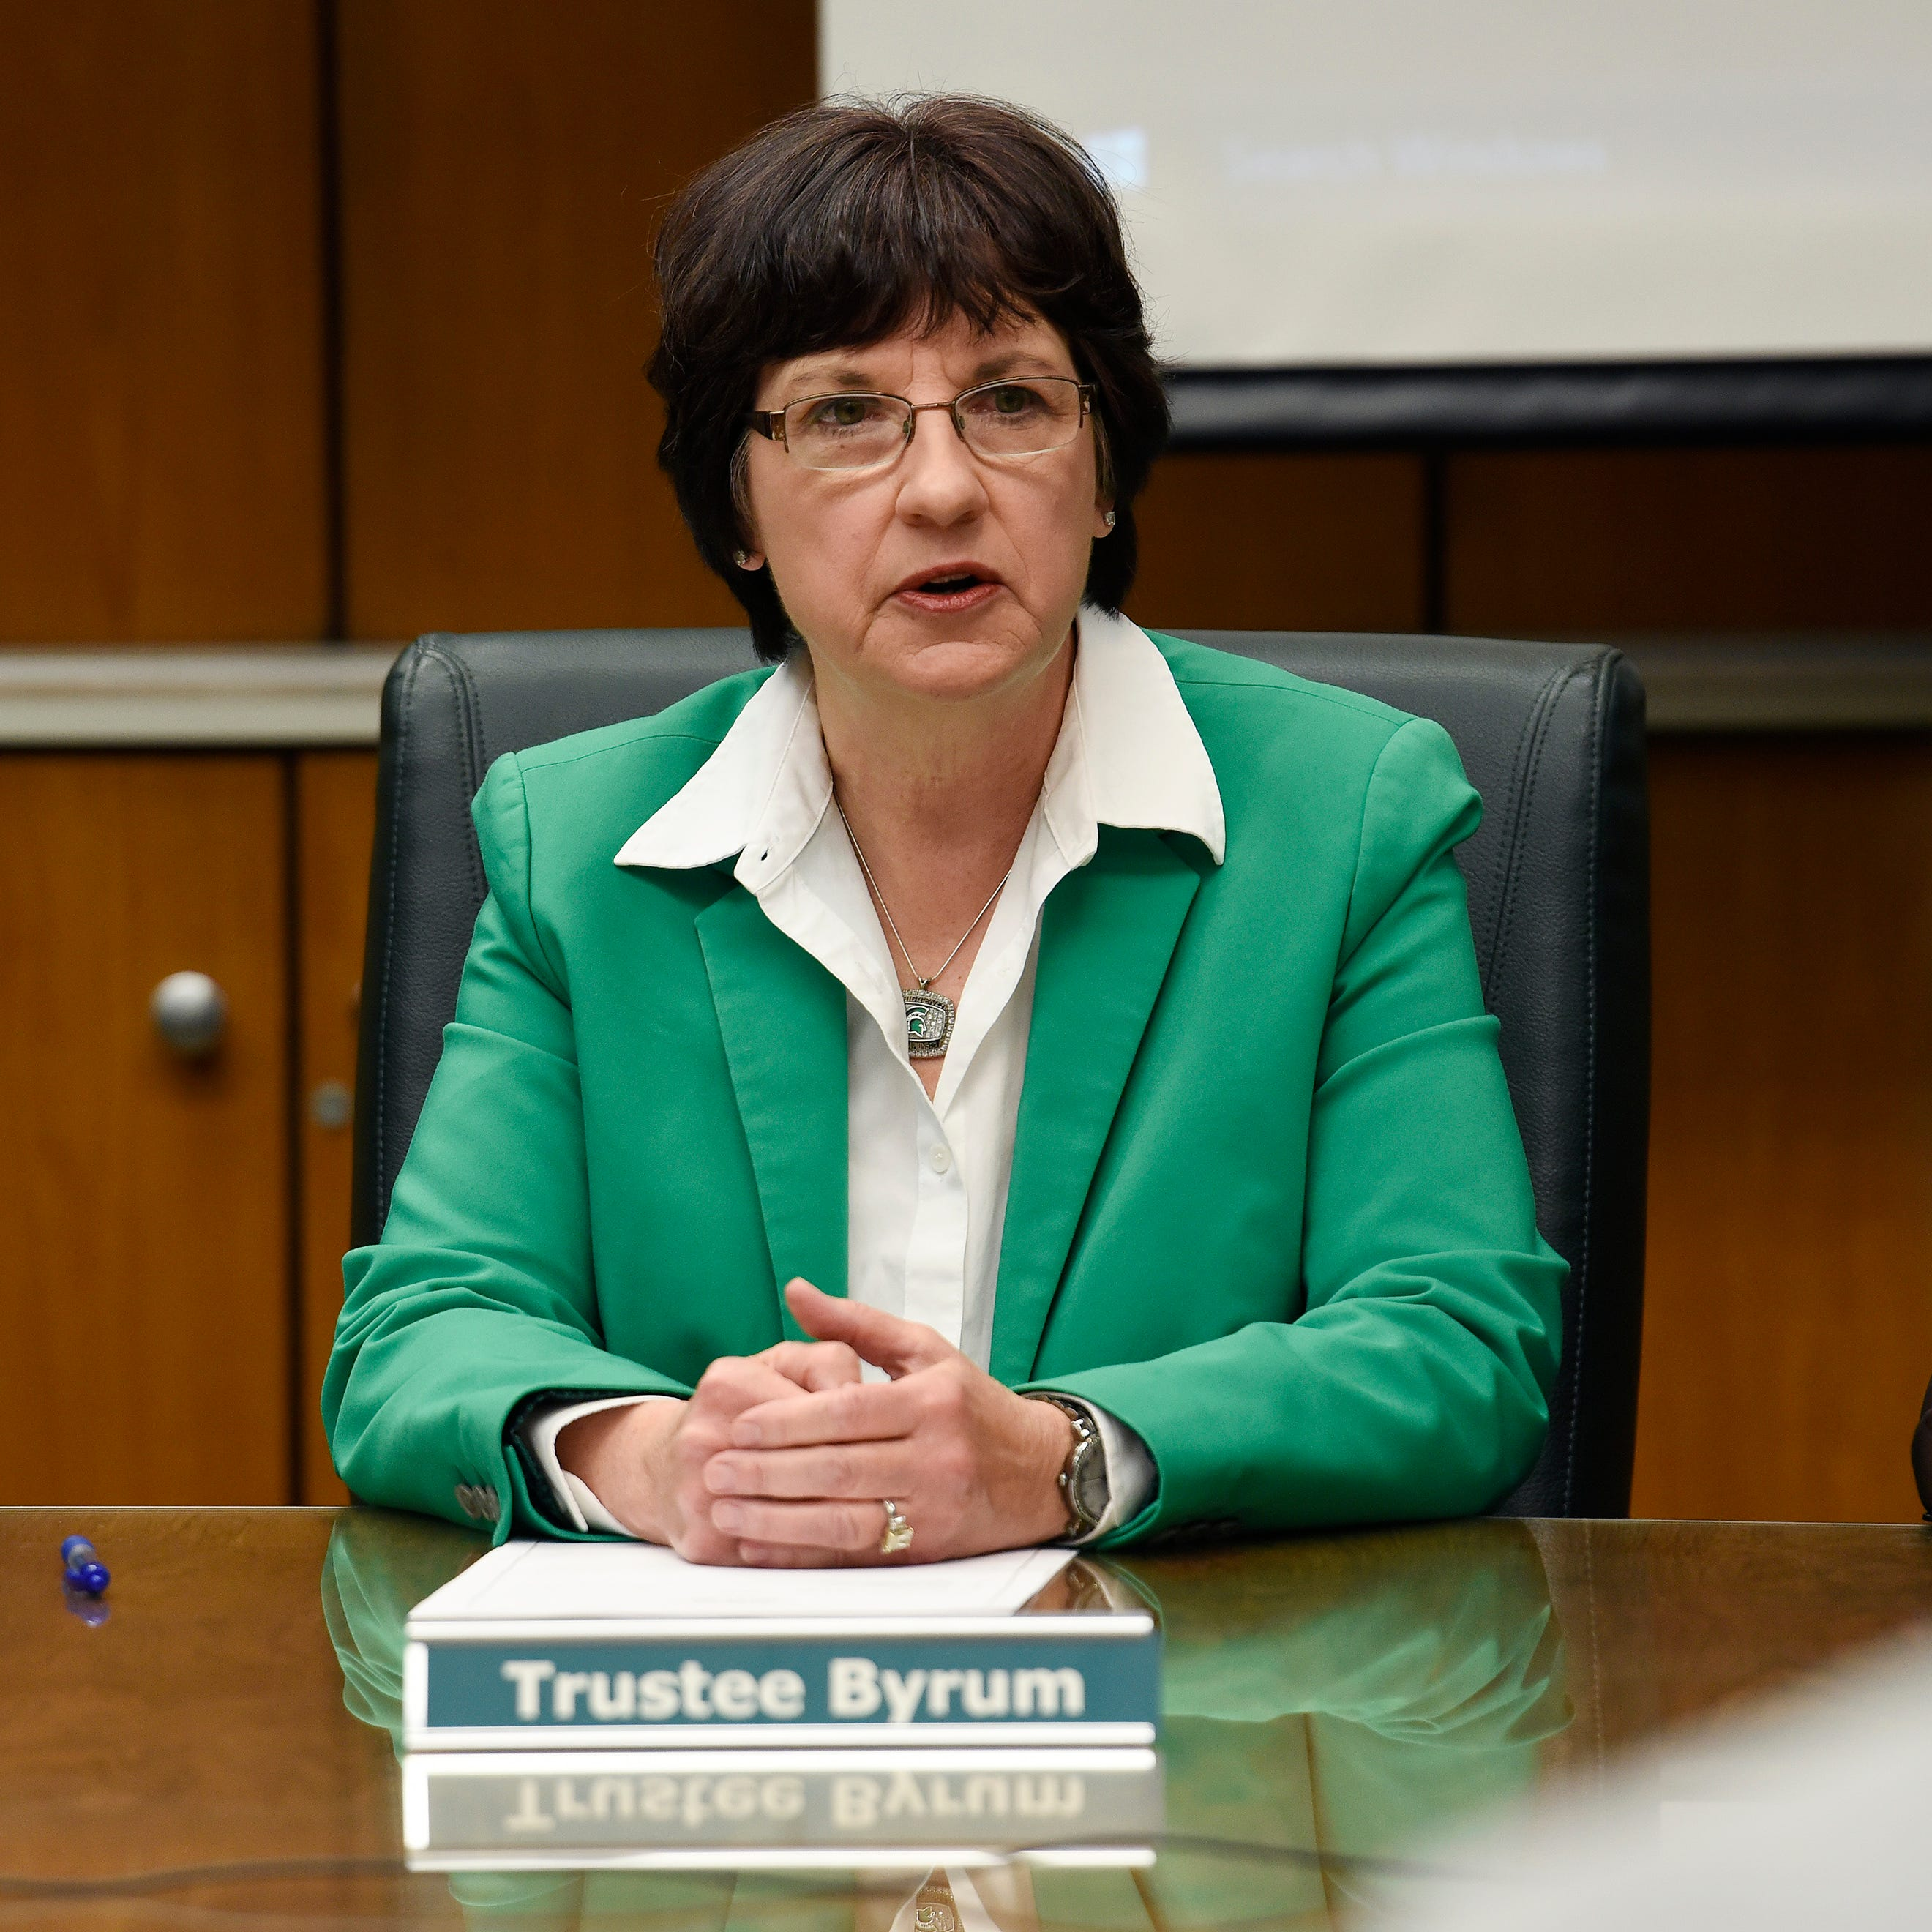 MSU trustee: Engler's comments on Nassar victims 'ill advised'